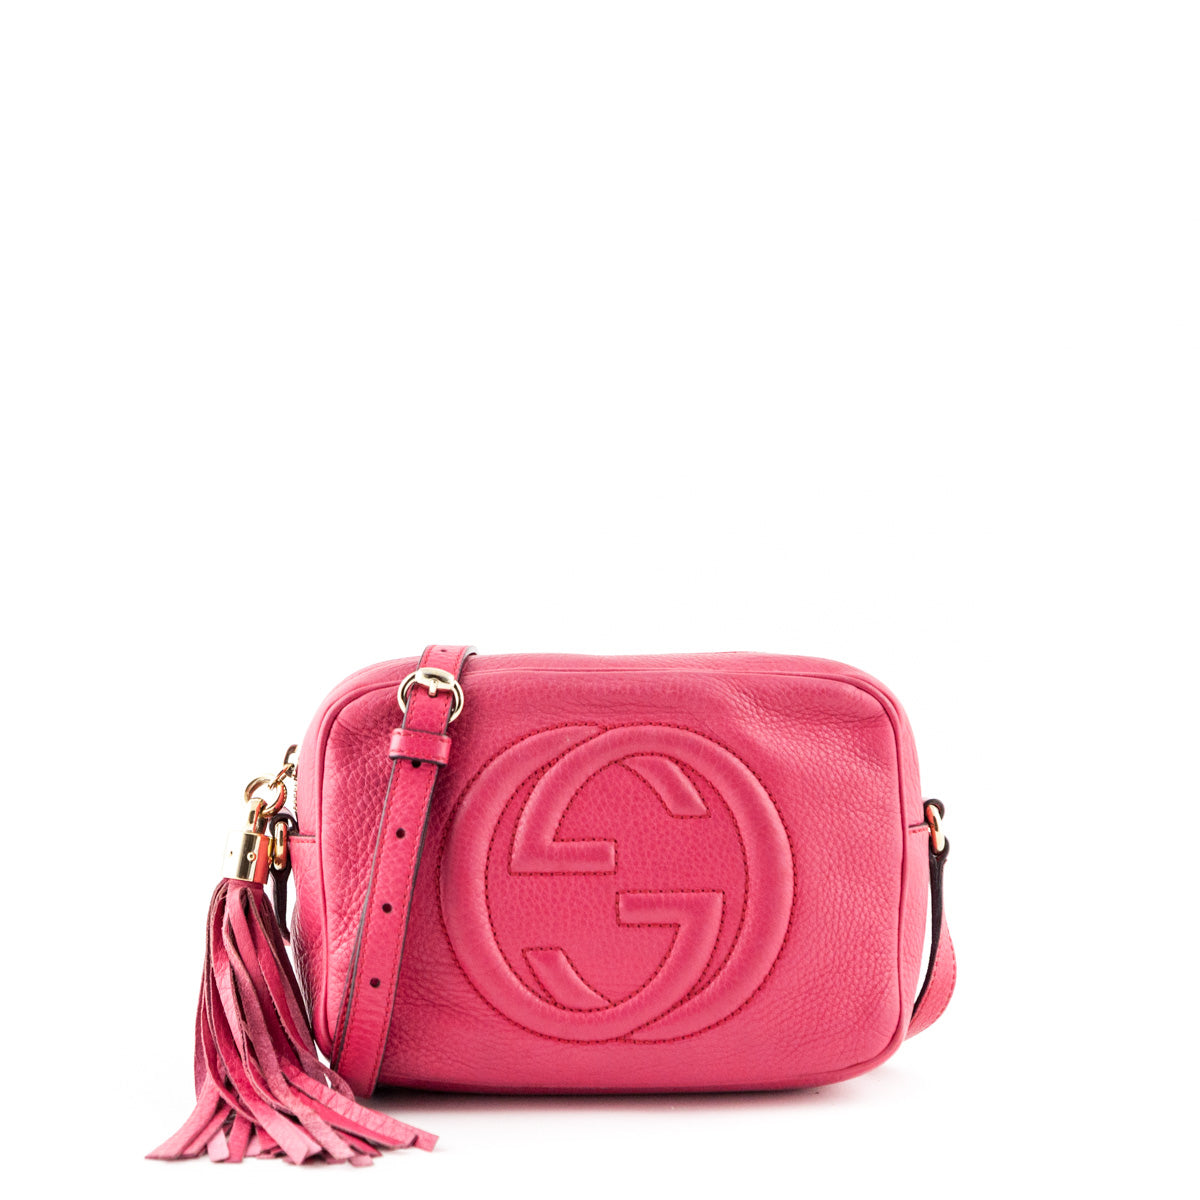 ffd69f03 Gucci Pink Soho Disco - LOVE that BAG - Preowned Authentic Designer  Handbags ...